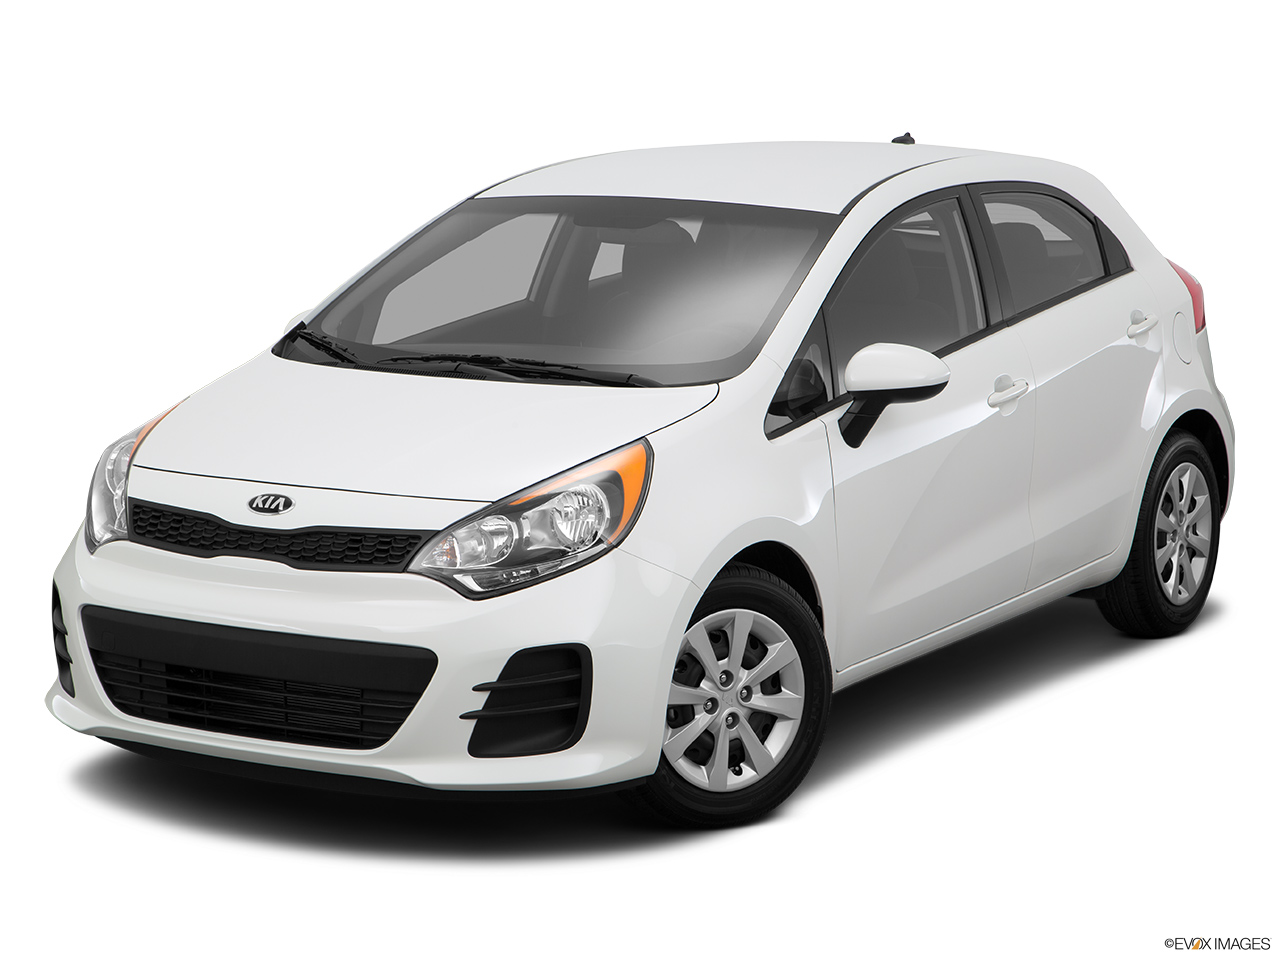 2017 kia rio hatchback prices in saudi arabia gulf specs reviews for riyadh jeddah dammam. Black Bedroom Furniture Sets. Home Design Ideas